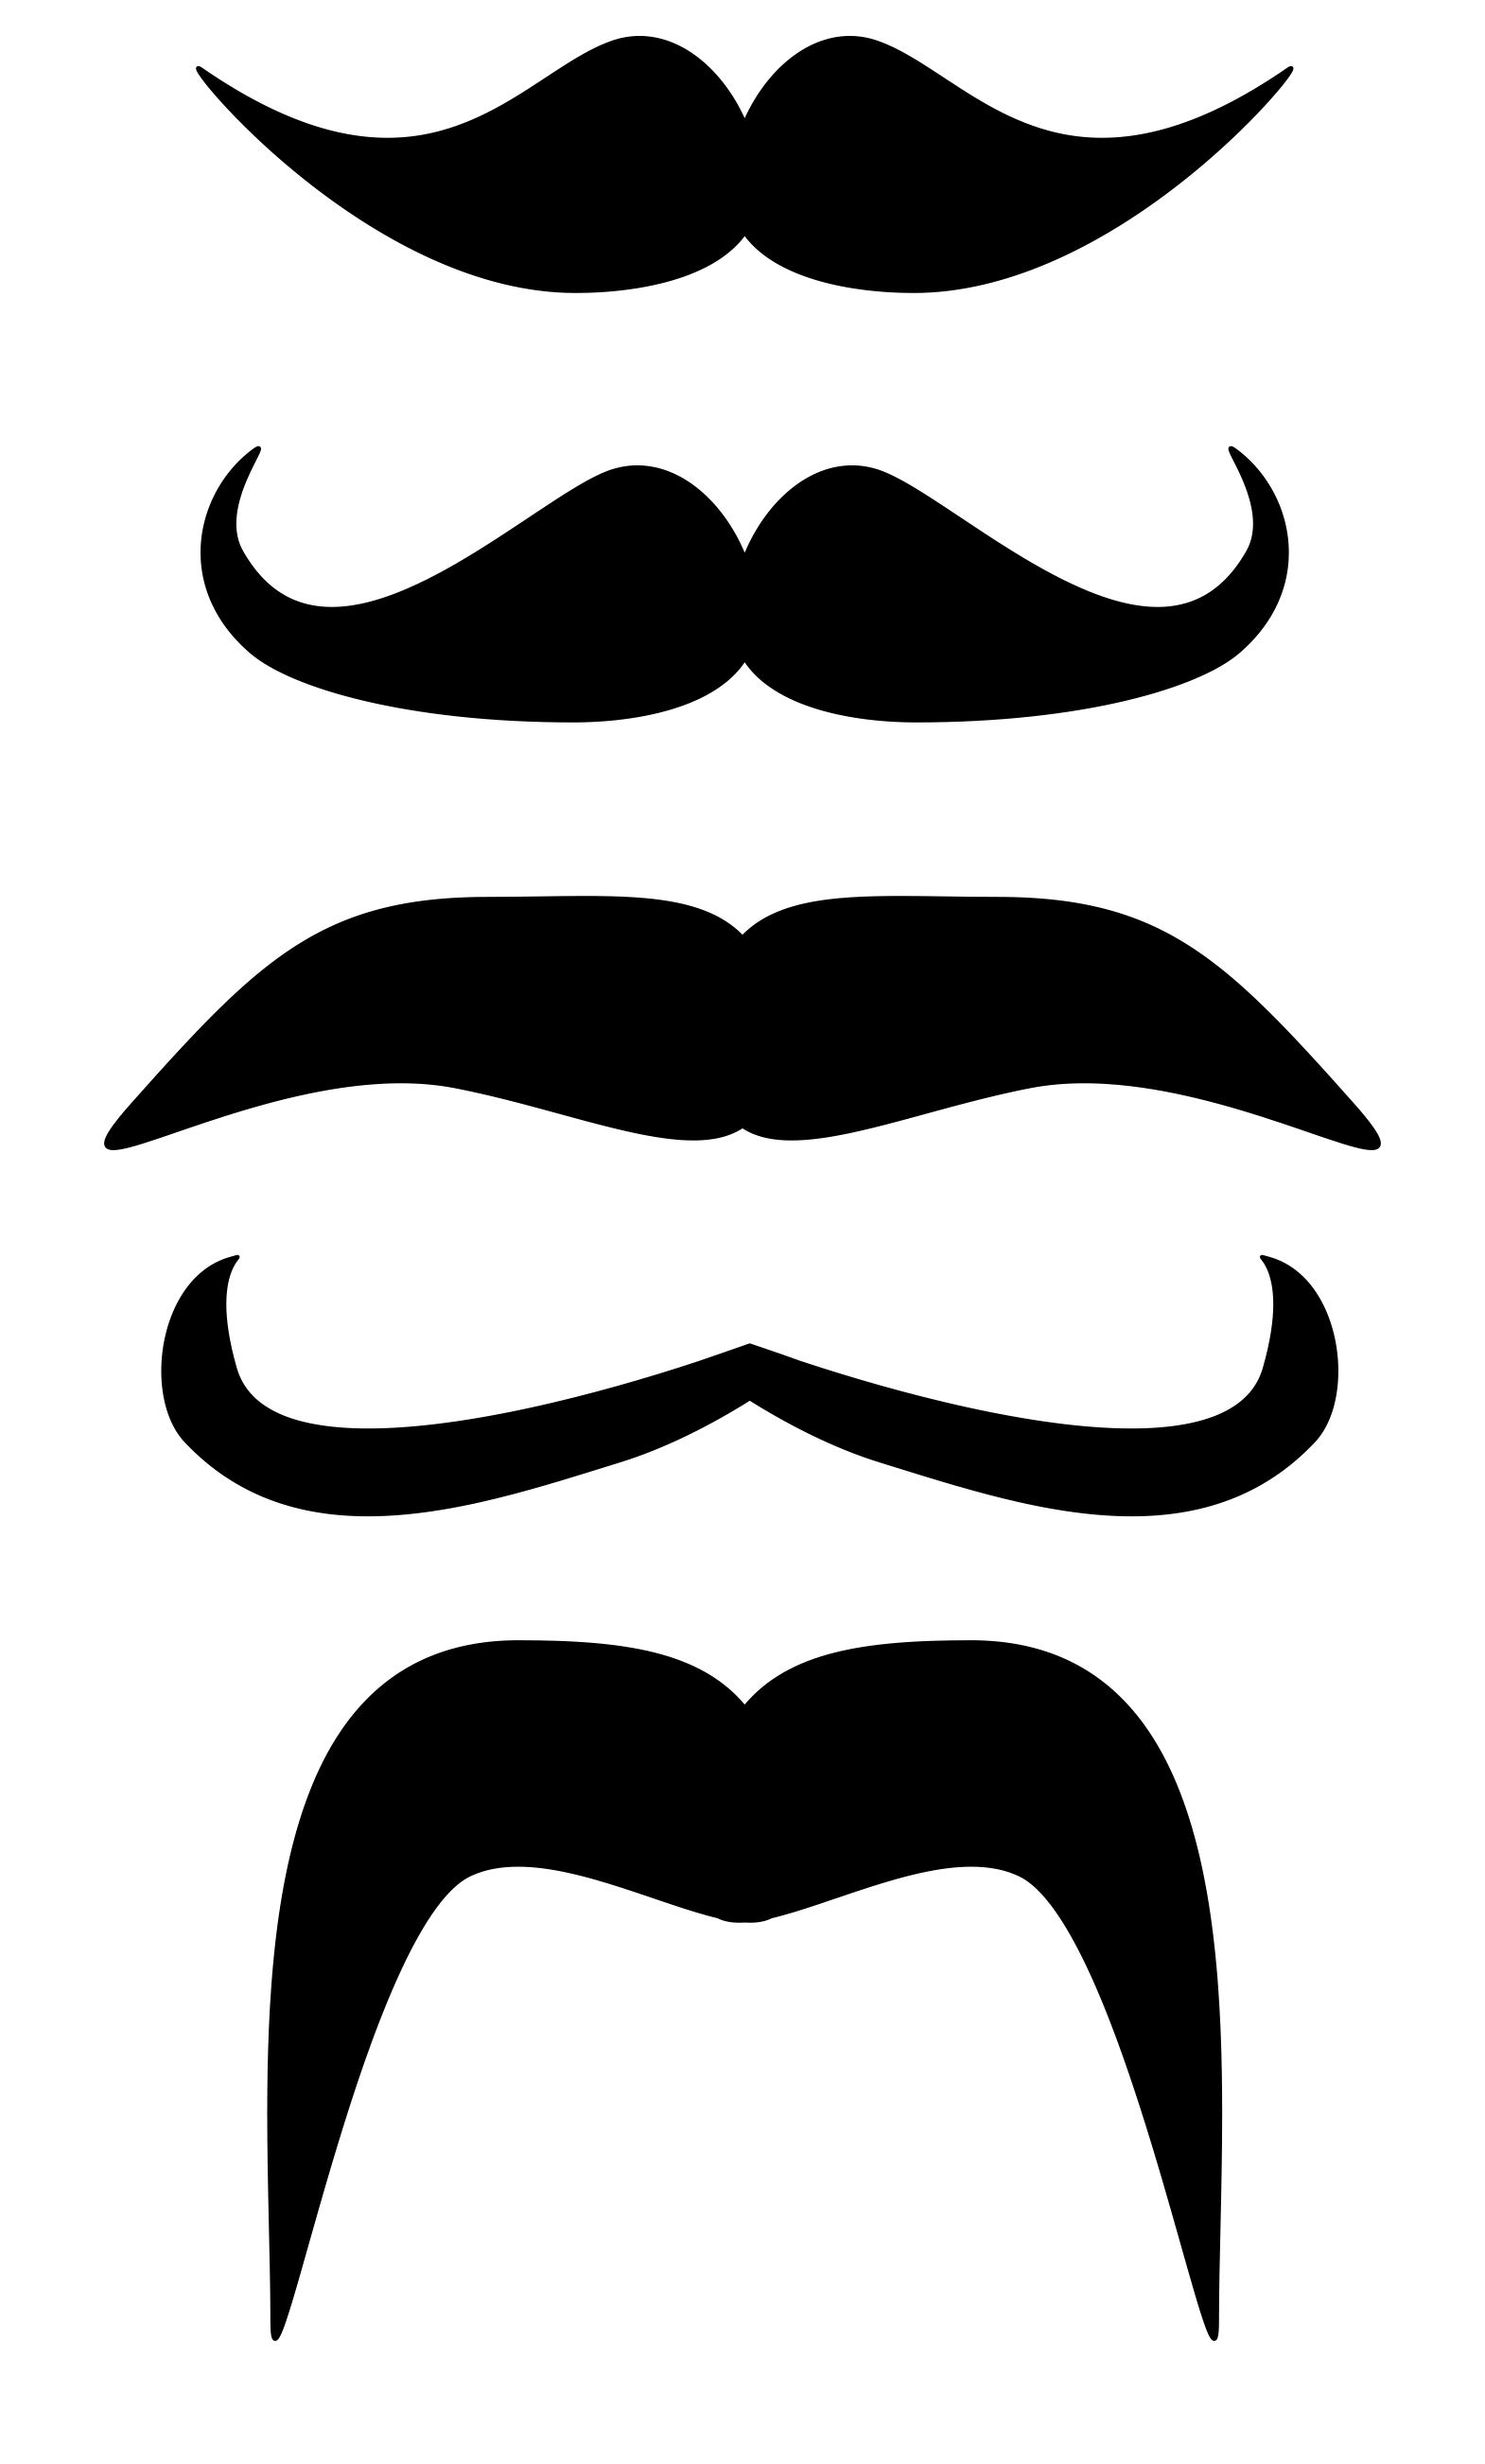 photograph regarding Printable Mustaches referred to as Printable mustache slice outs! Print out and Display Your Mo